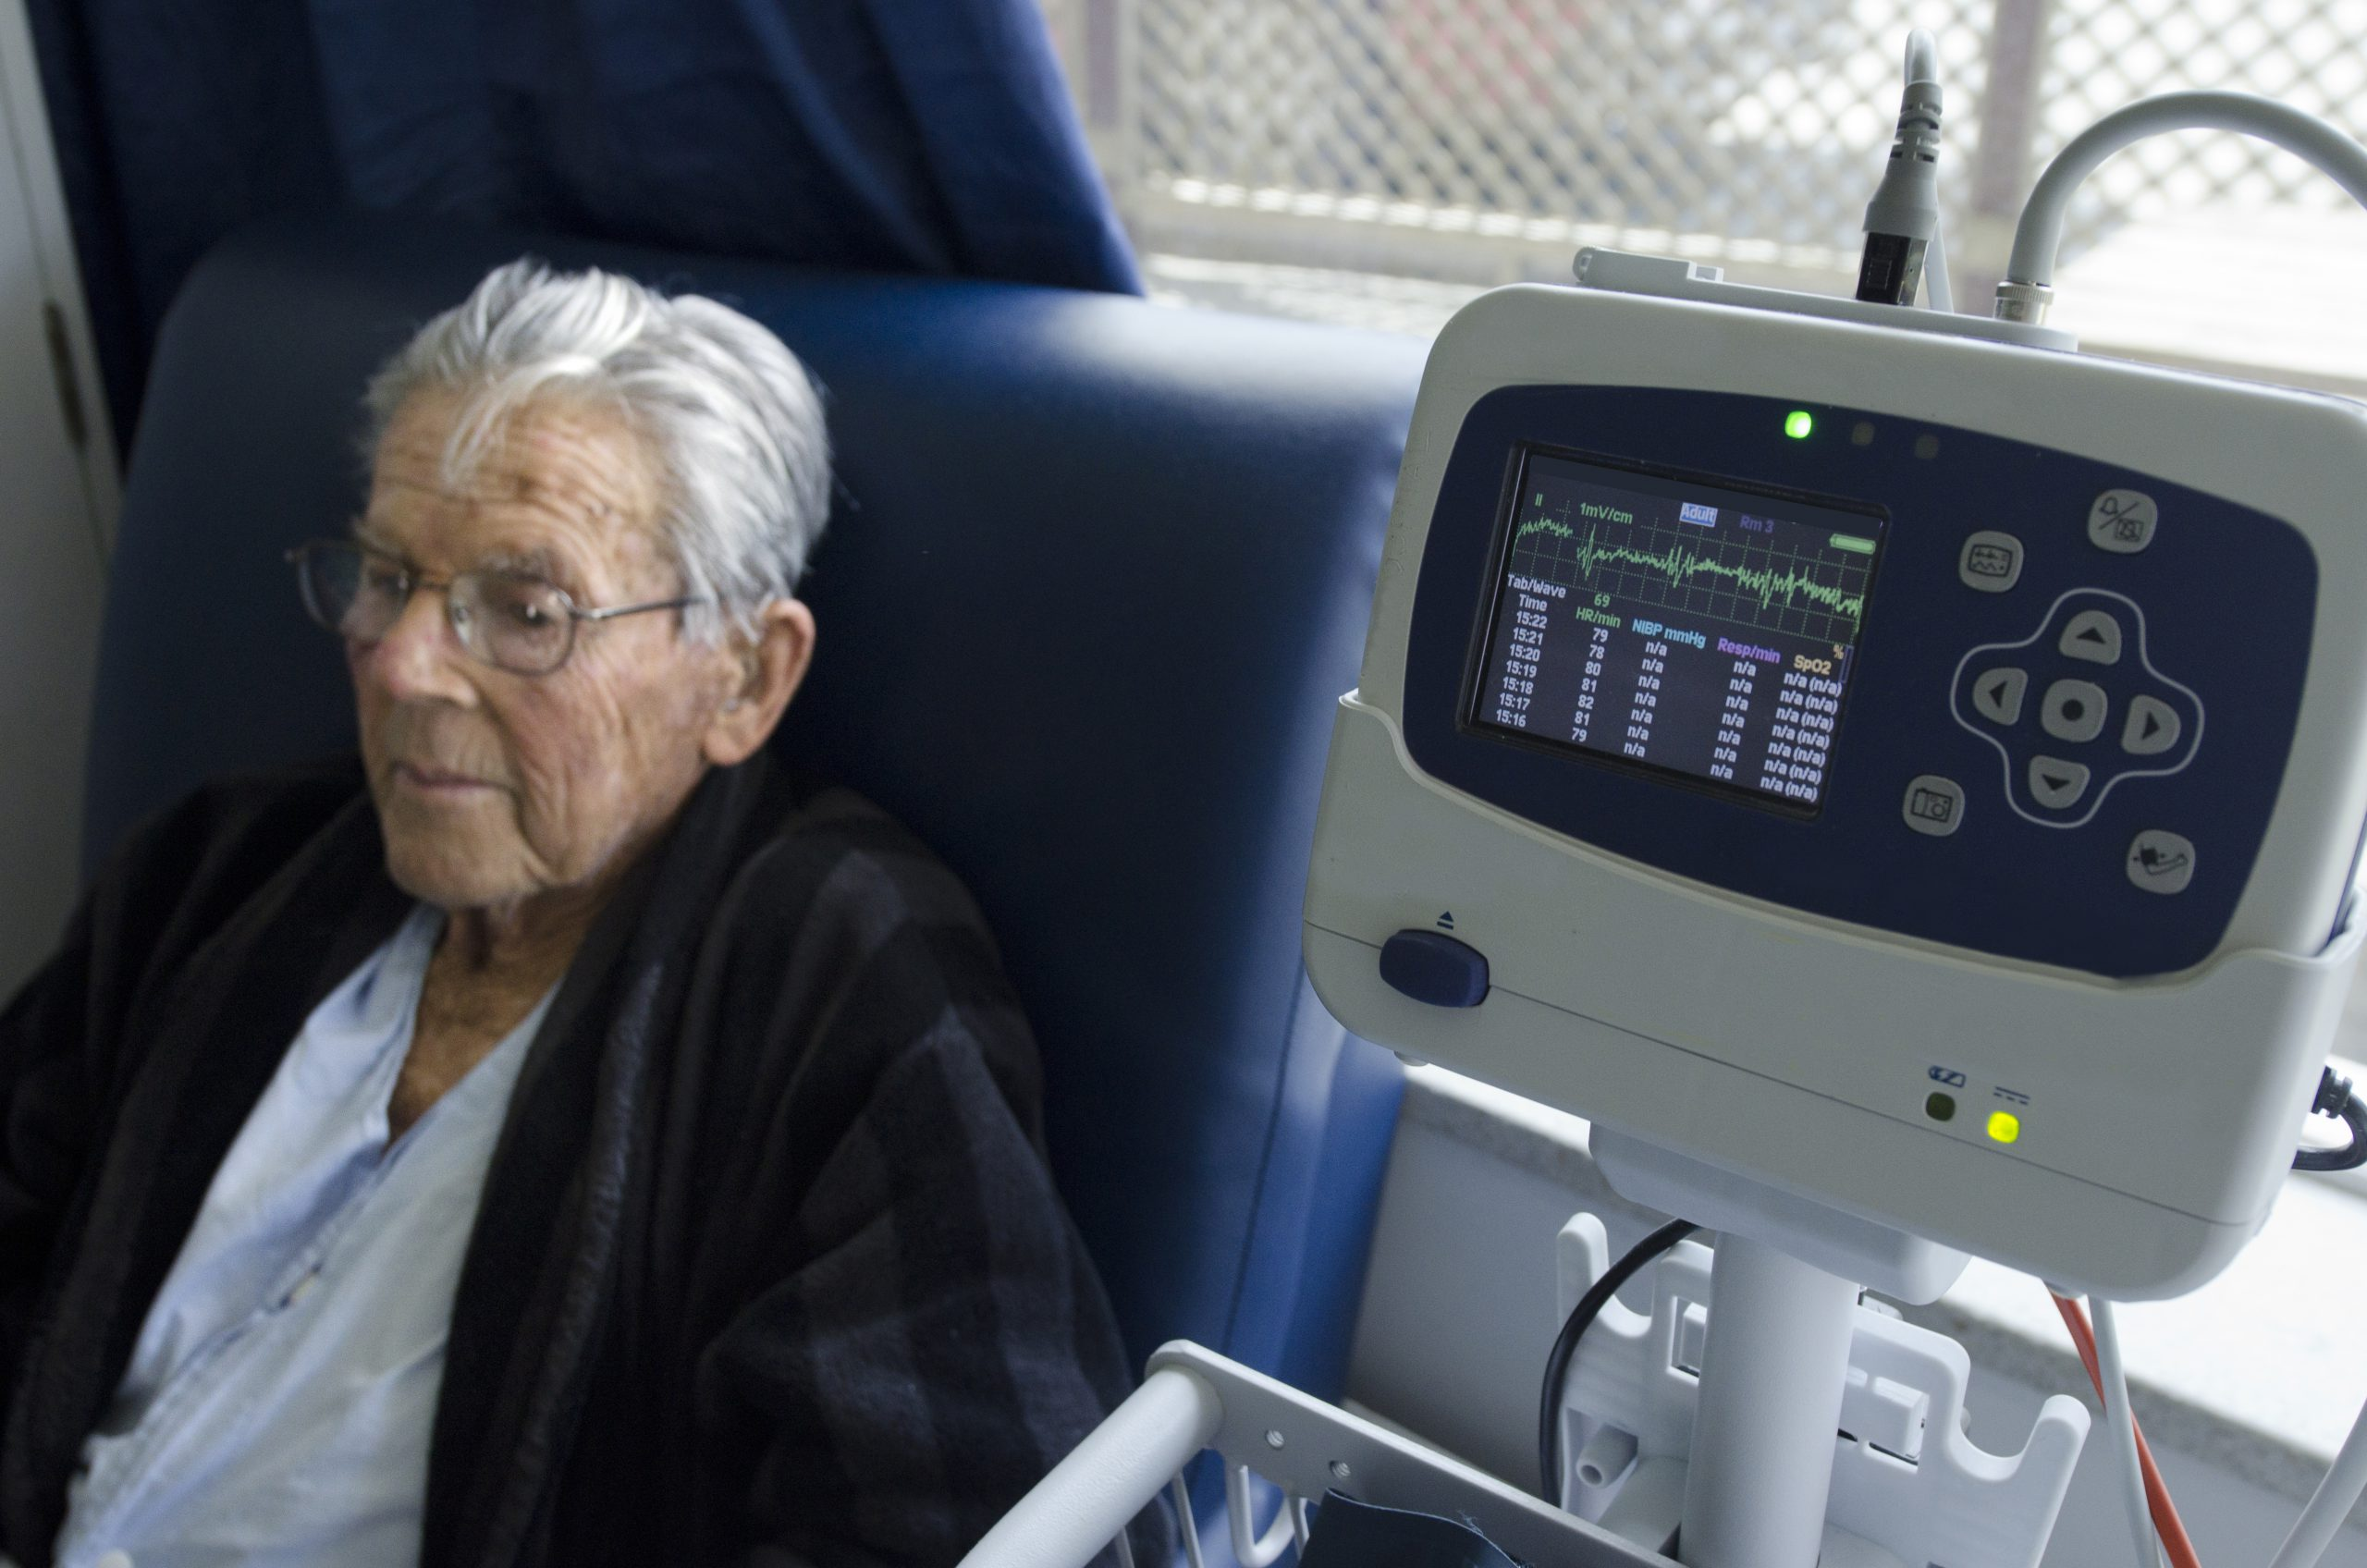 Heart rate monitor of a sick elderly man.